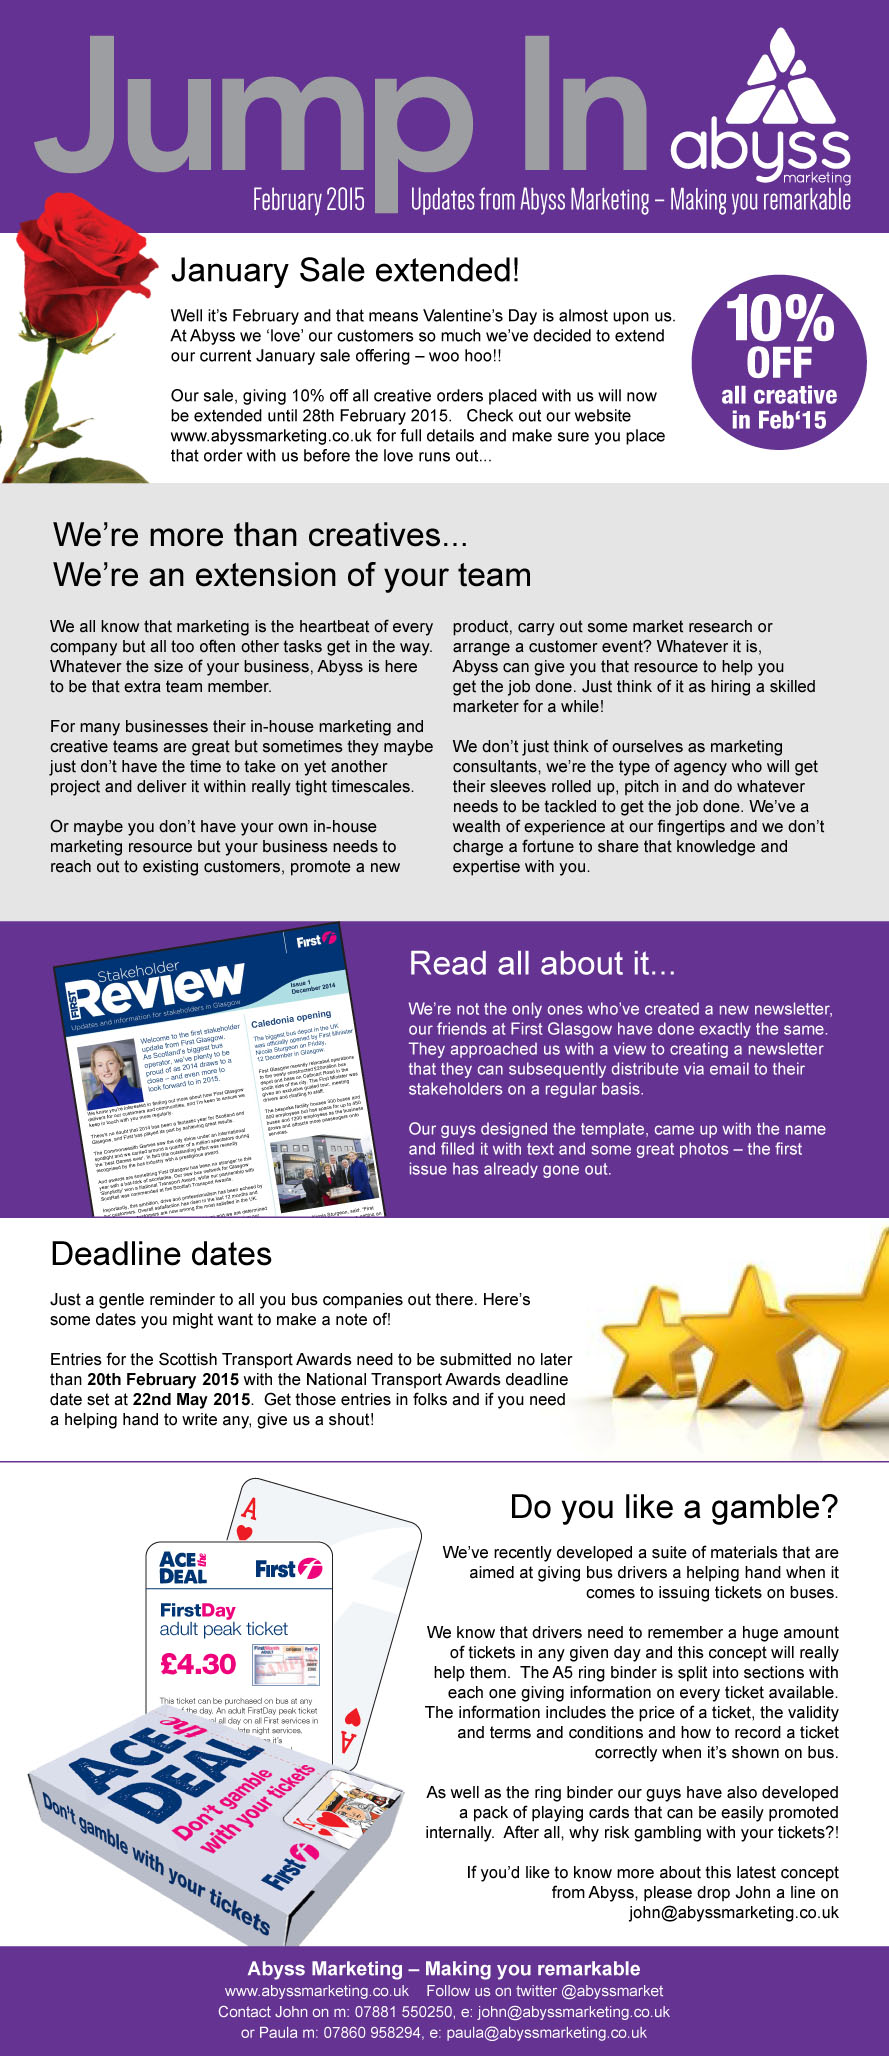 February's newsletter is ready and on the blocks